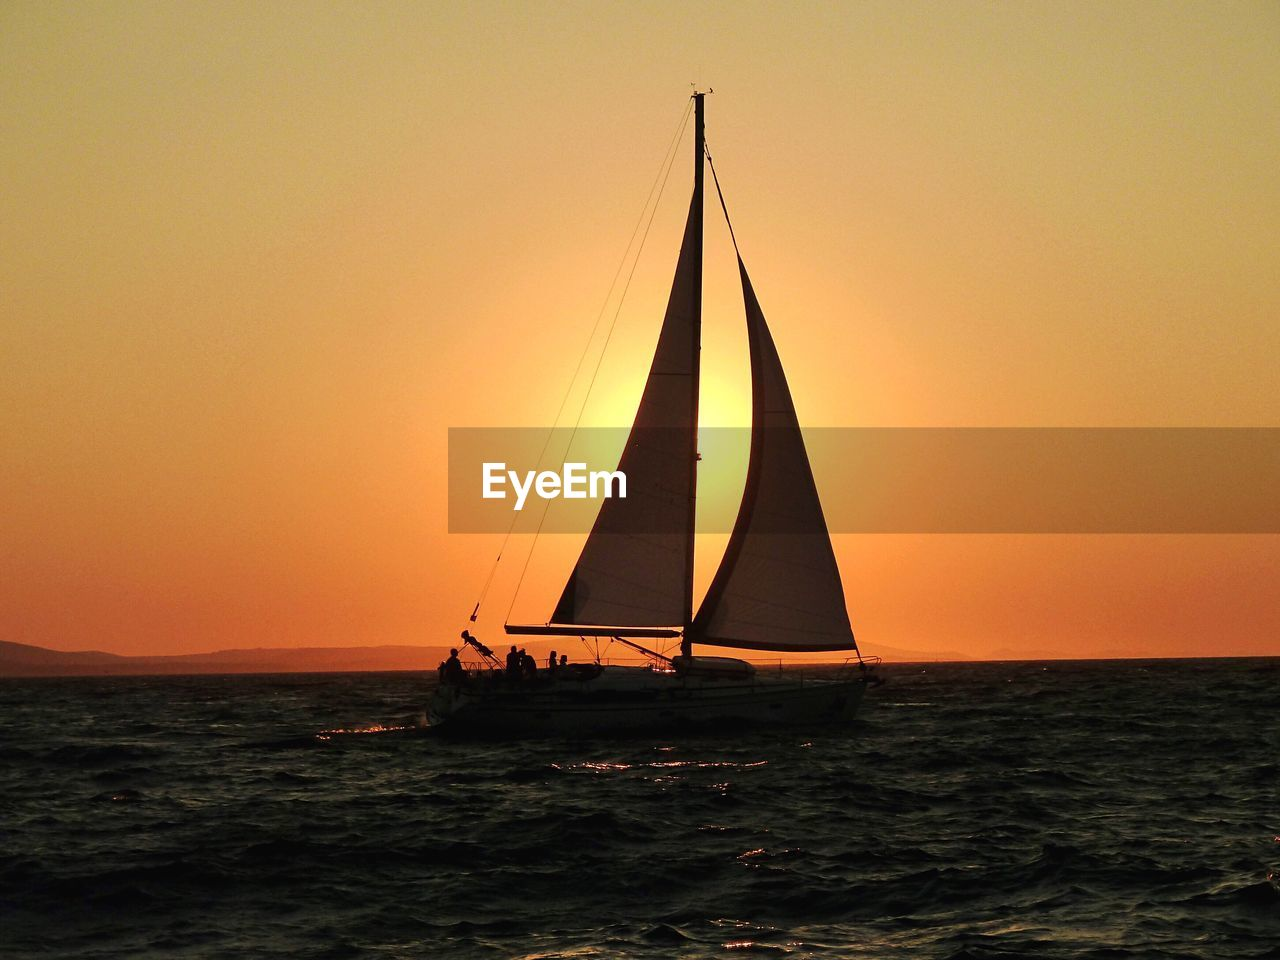 sunset, sea, orange color, beauty in nature, silhouette, water, scenics, nature, nautical vessel, sailboat, tranquility, mast, transportation, clear sky, sky, outdoors, tranquil scene, horizon over water, waterfront, sailing, no people, day